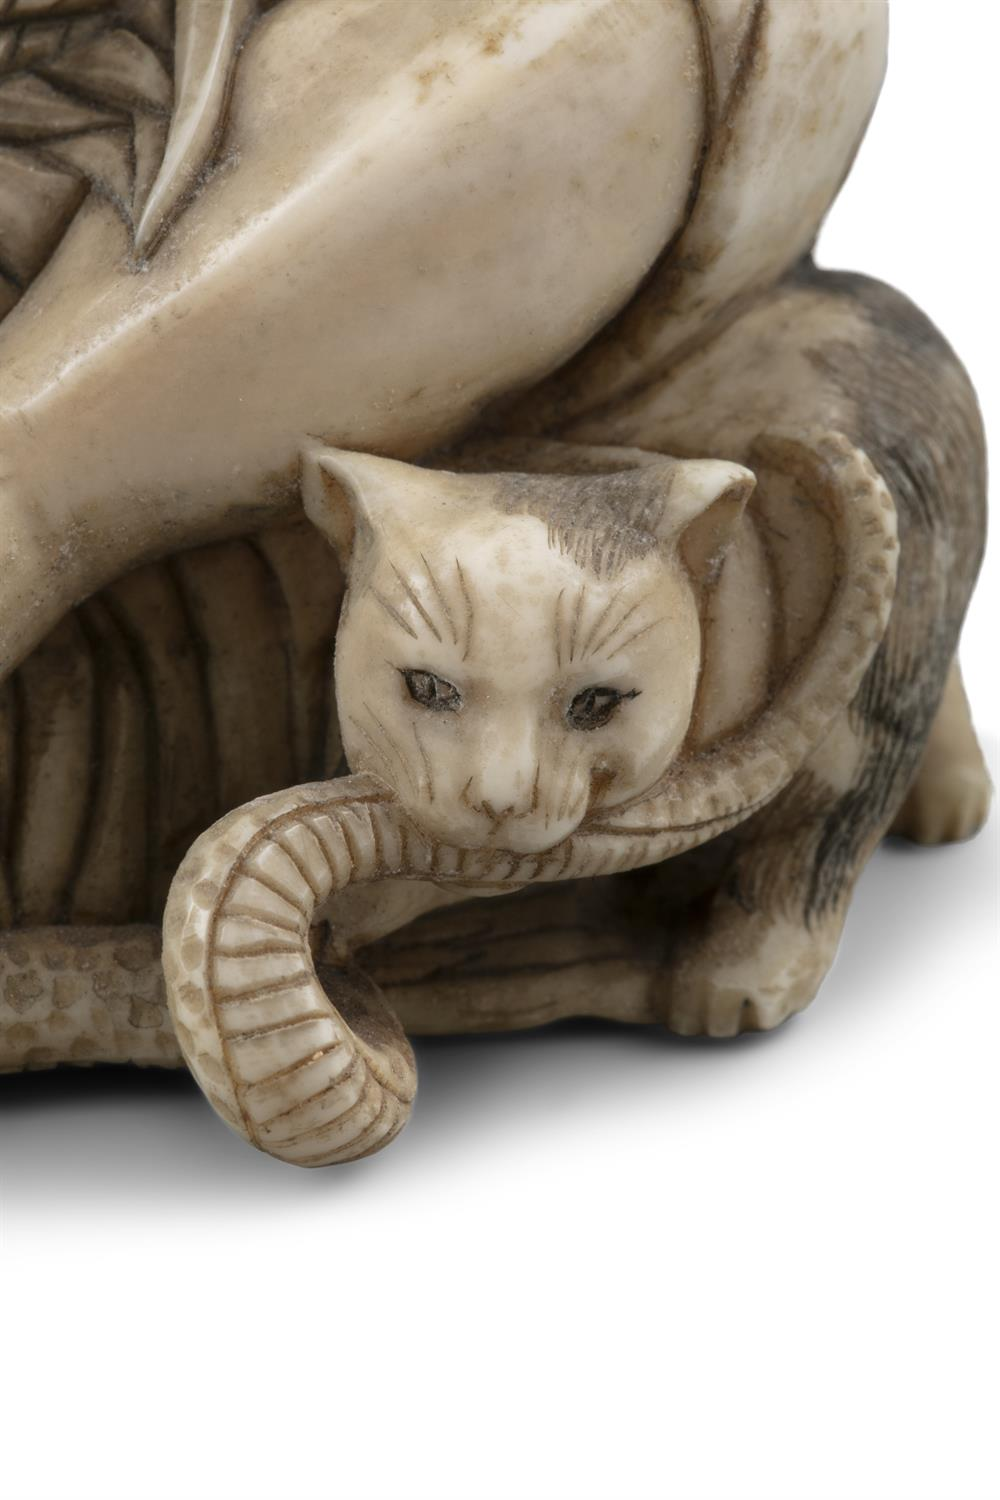 *MASAHIDE 正秀: A CARVED IVORY OKIMONO OF SCARED MAN WITH A CAT AND A SNAKE Japan, Meiji period, - Image 8 of 14